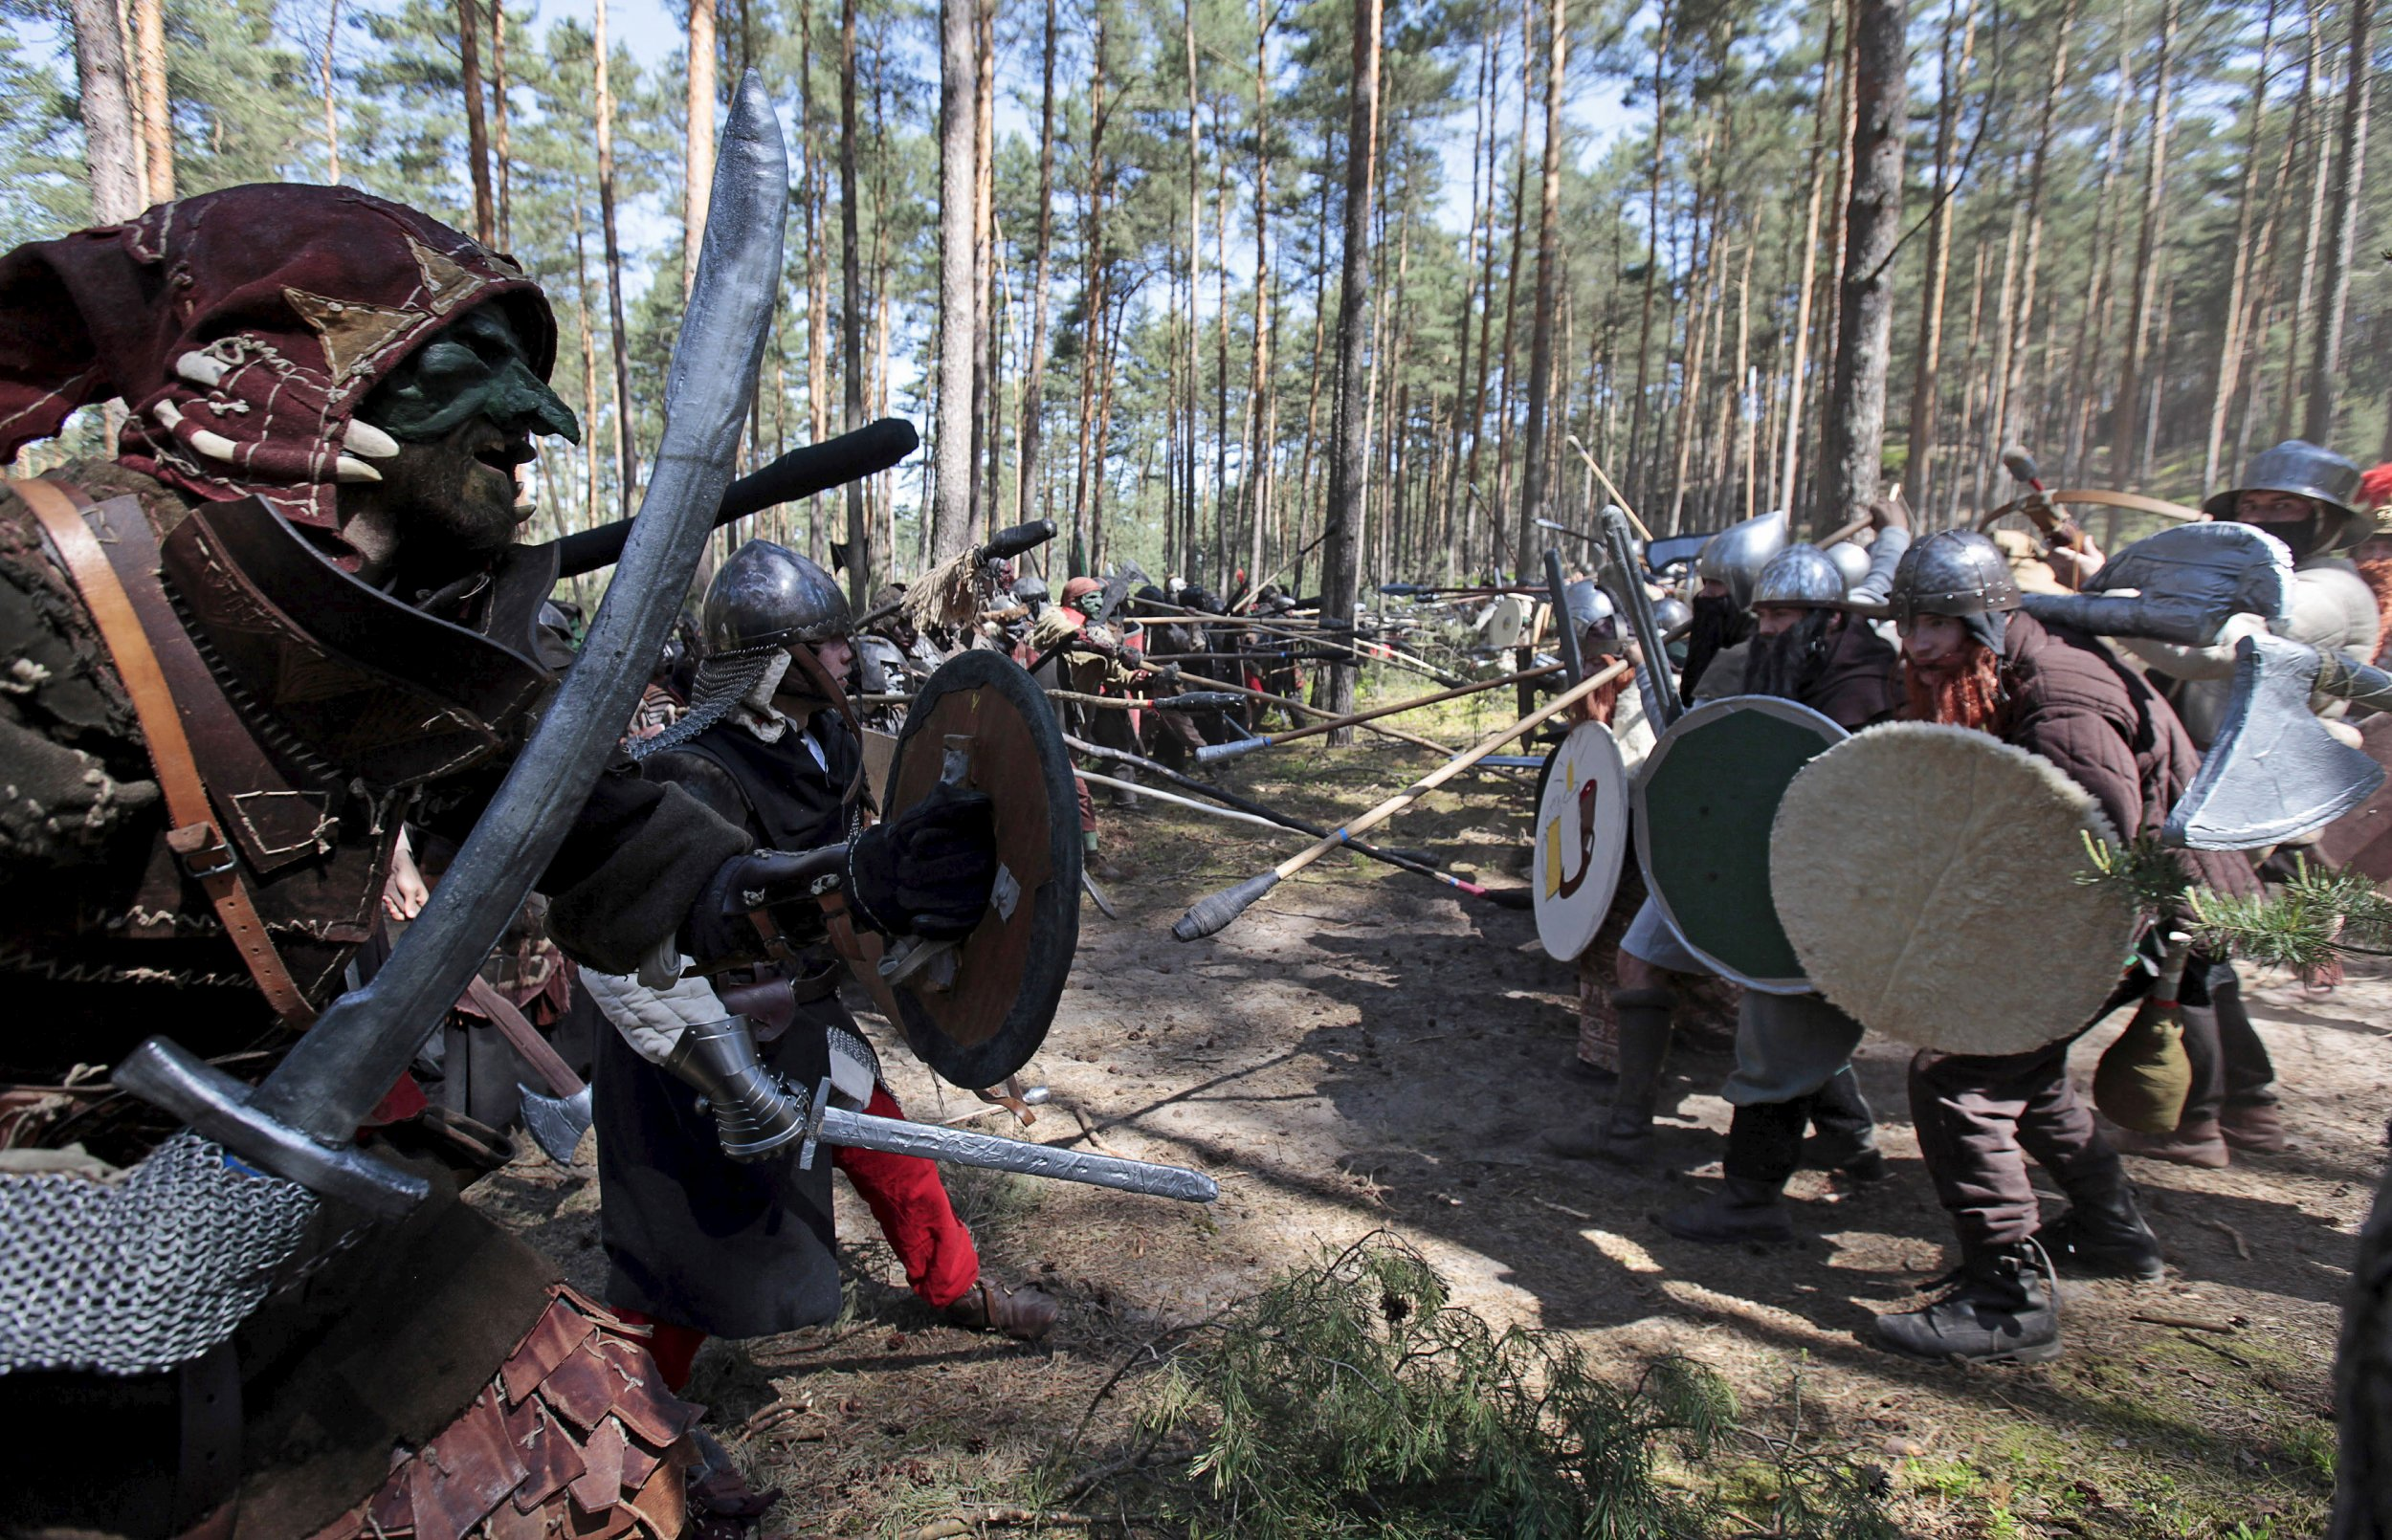 Tolkien universe re-enactors clash in a forest